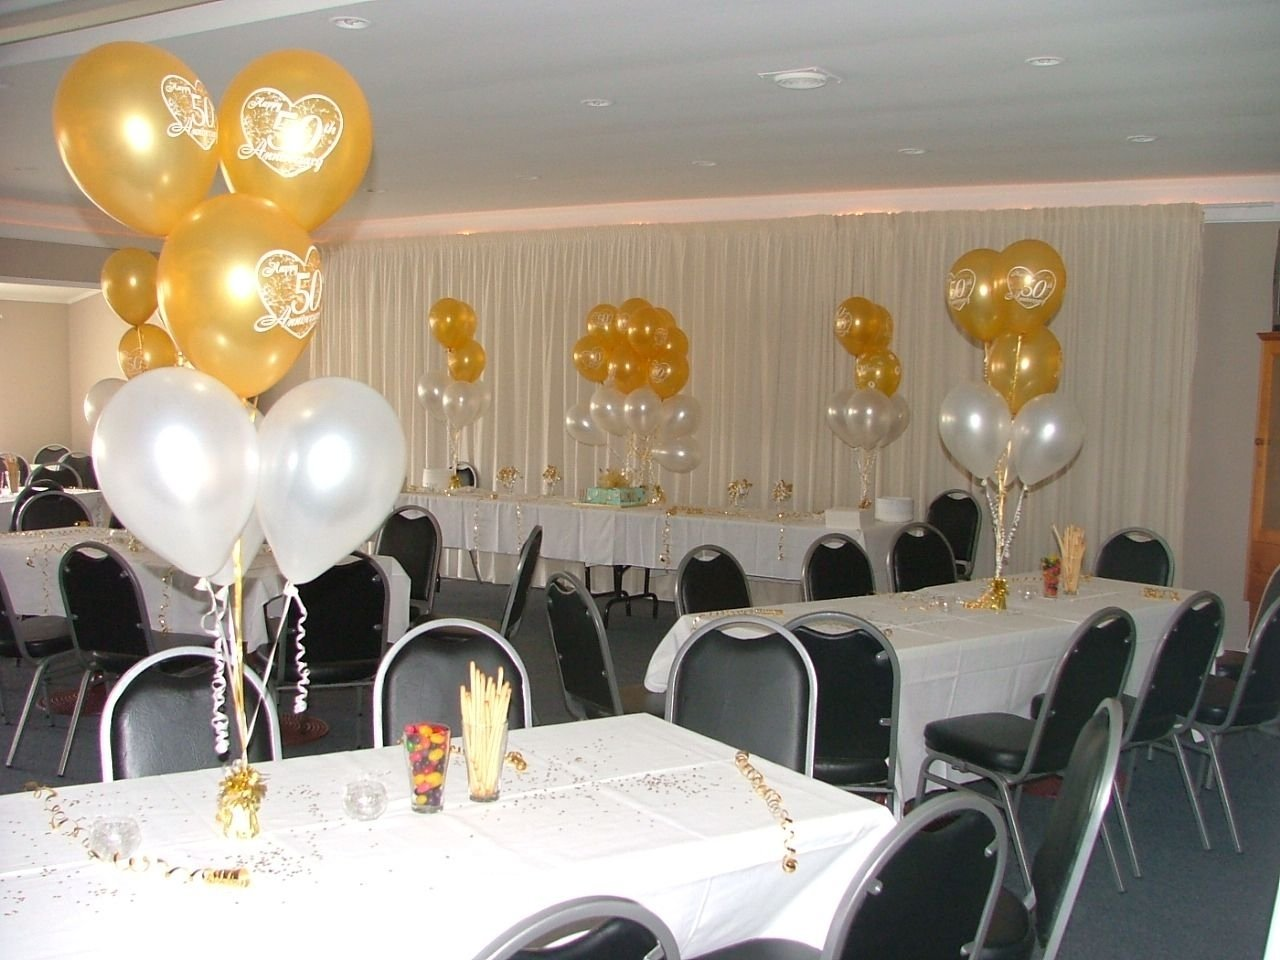 10 Spectacular 50Th Wedding Anniversary Party Ideas Parents wedding decorations wedding decorations ideas anniversary 1 2021